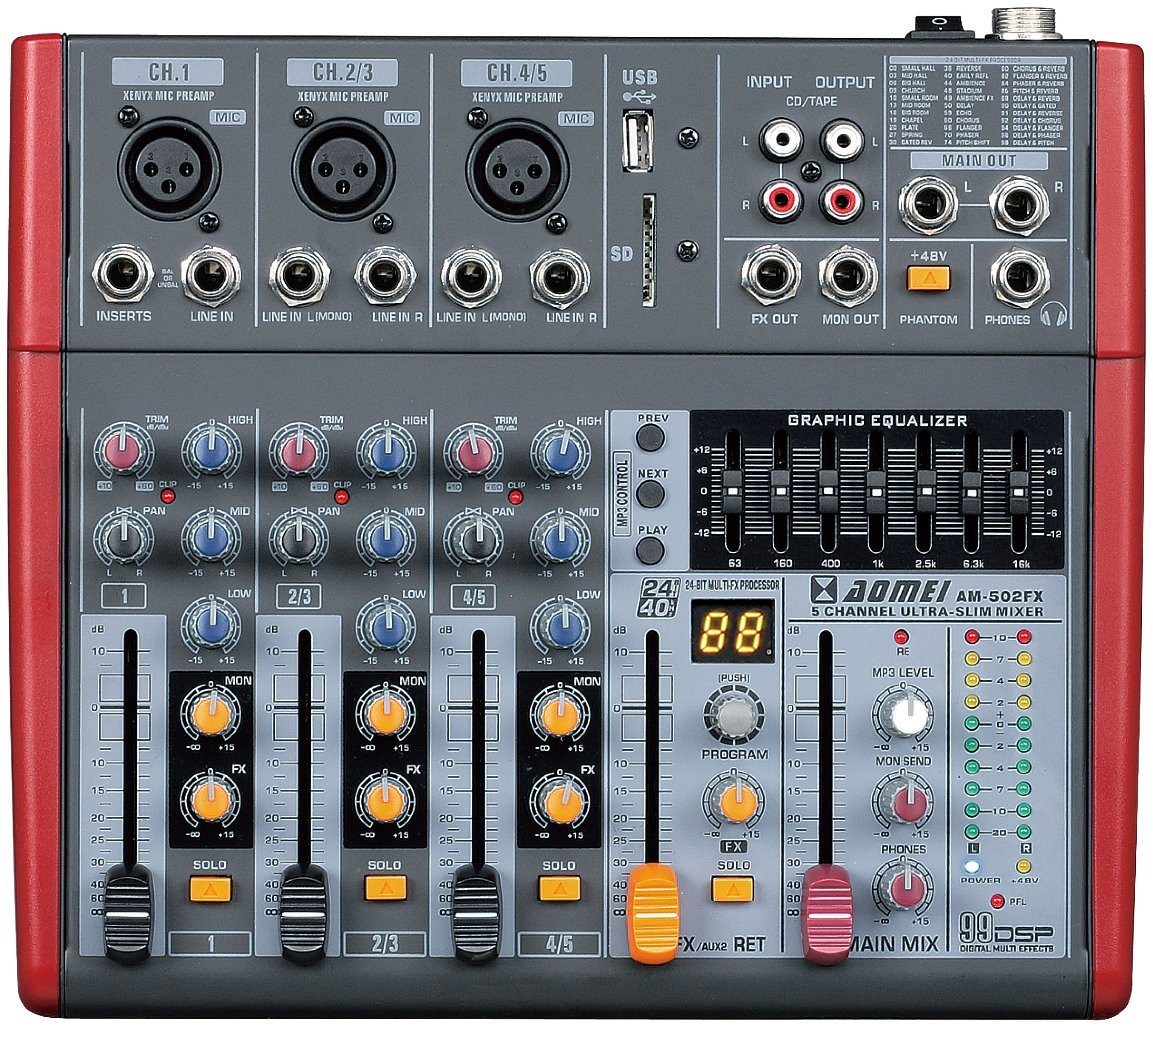 Special Popular Design Smaller Mixer Am-502fx Series Professional Amplifier